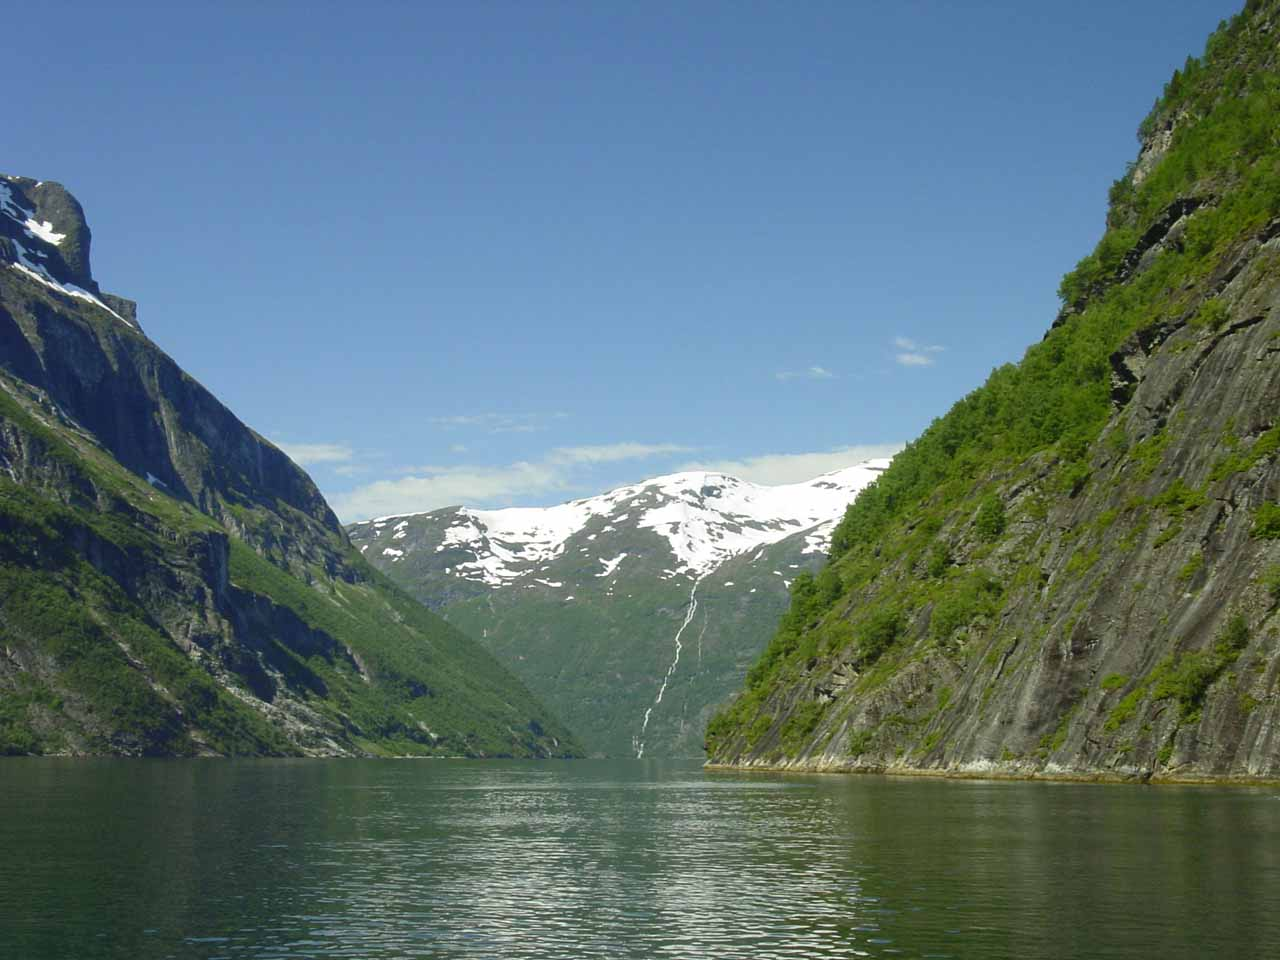 Of course the main draw of coming to Geiranger was to do the cruise of the scenic Geirangerfjorden. Kvanndalsfossen was actually something we stumbled upon on the way there